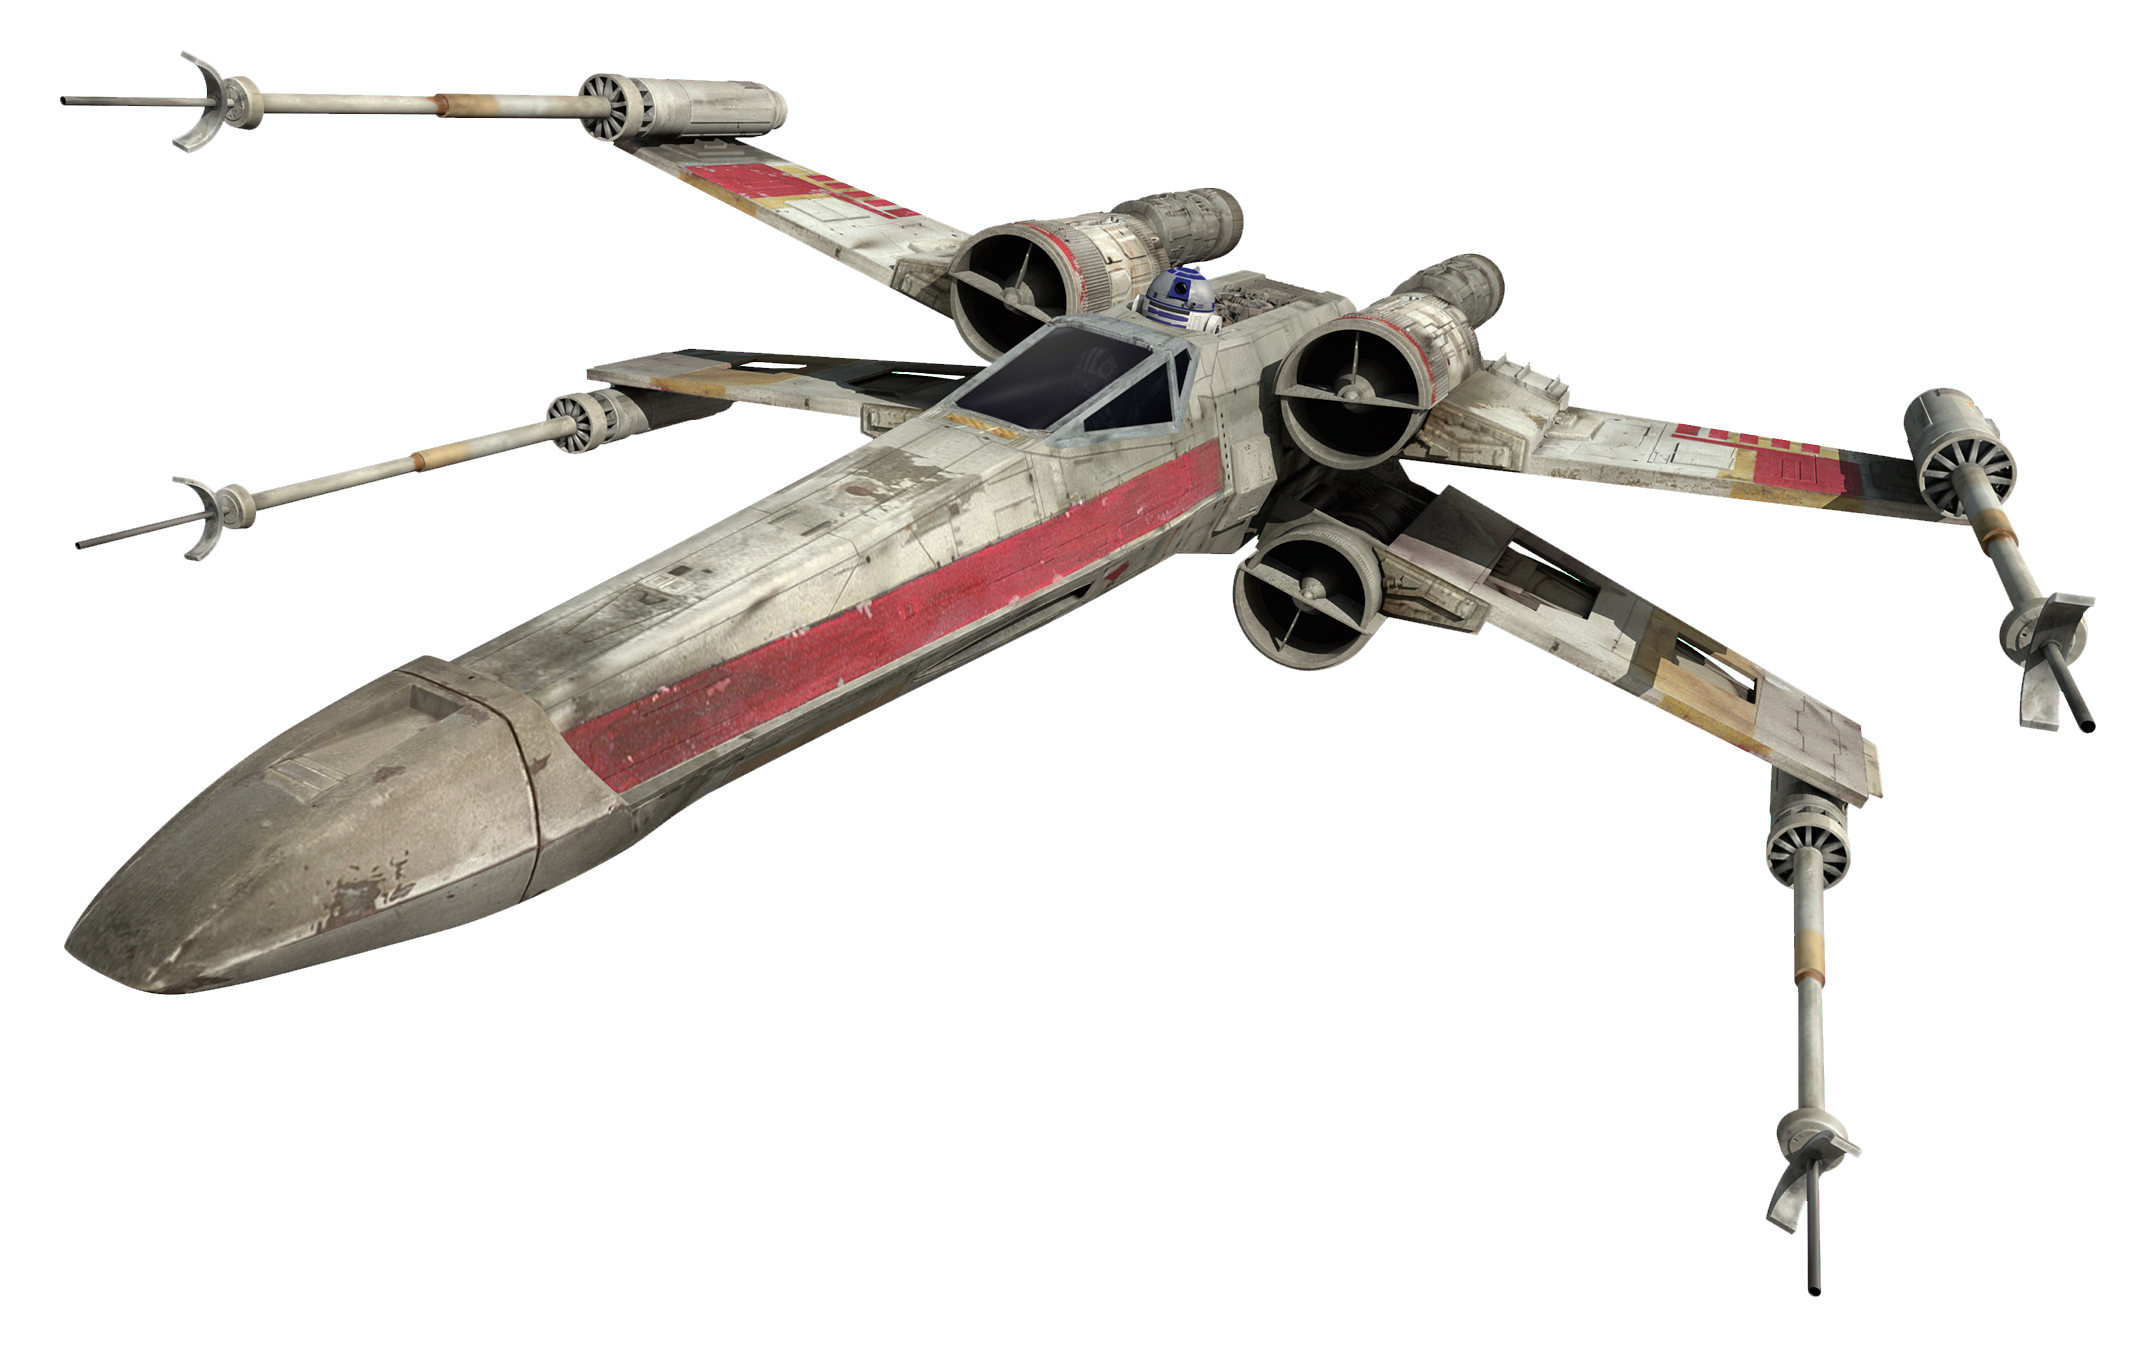 Star destroyer clipart stock T-65 X-wing starfighter | Wookieepedia | FANDOM powered by Wikia stock